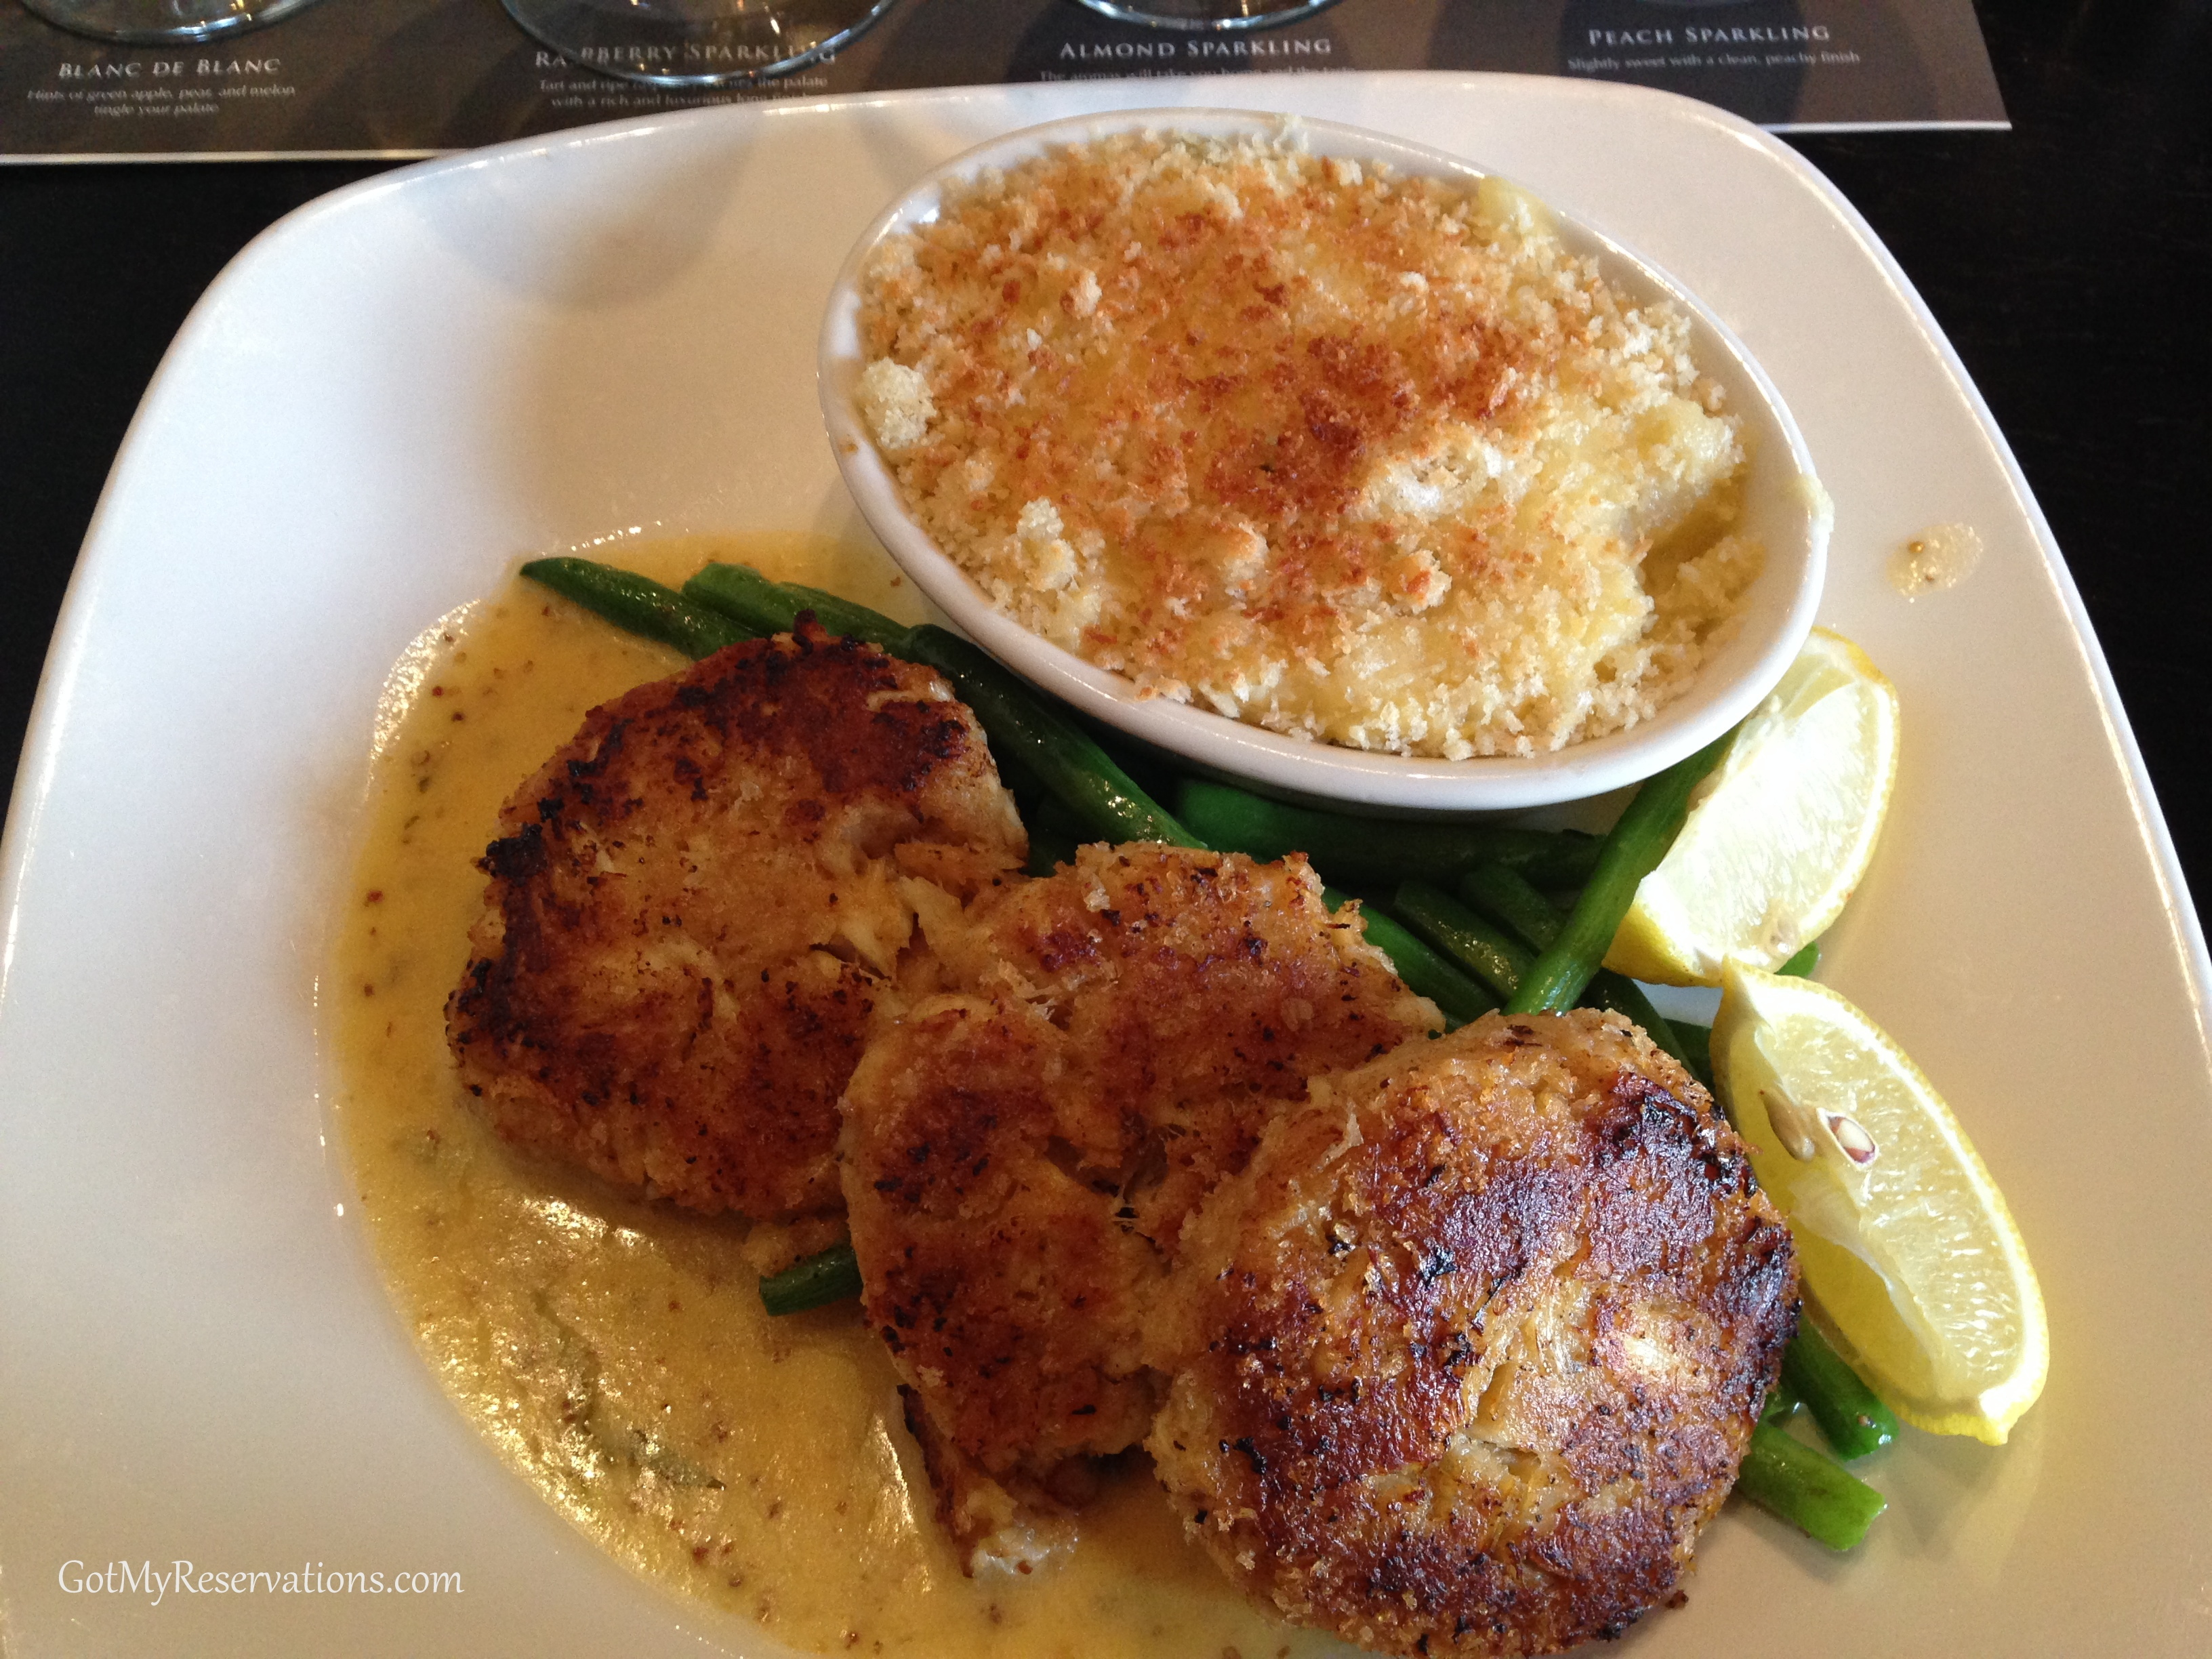 Northwest Crab Cakes